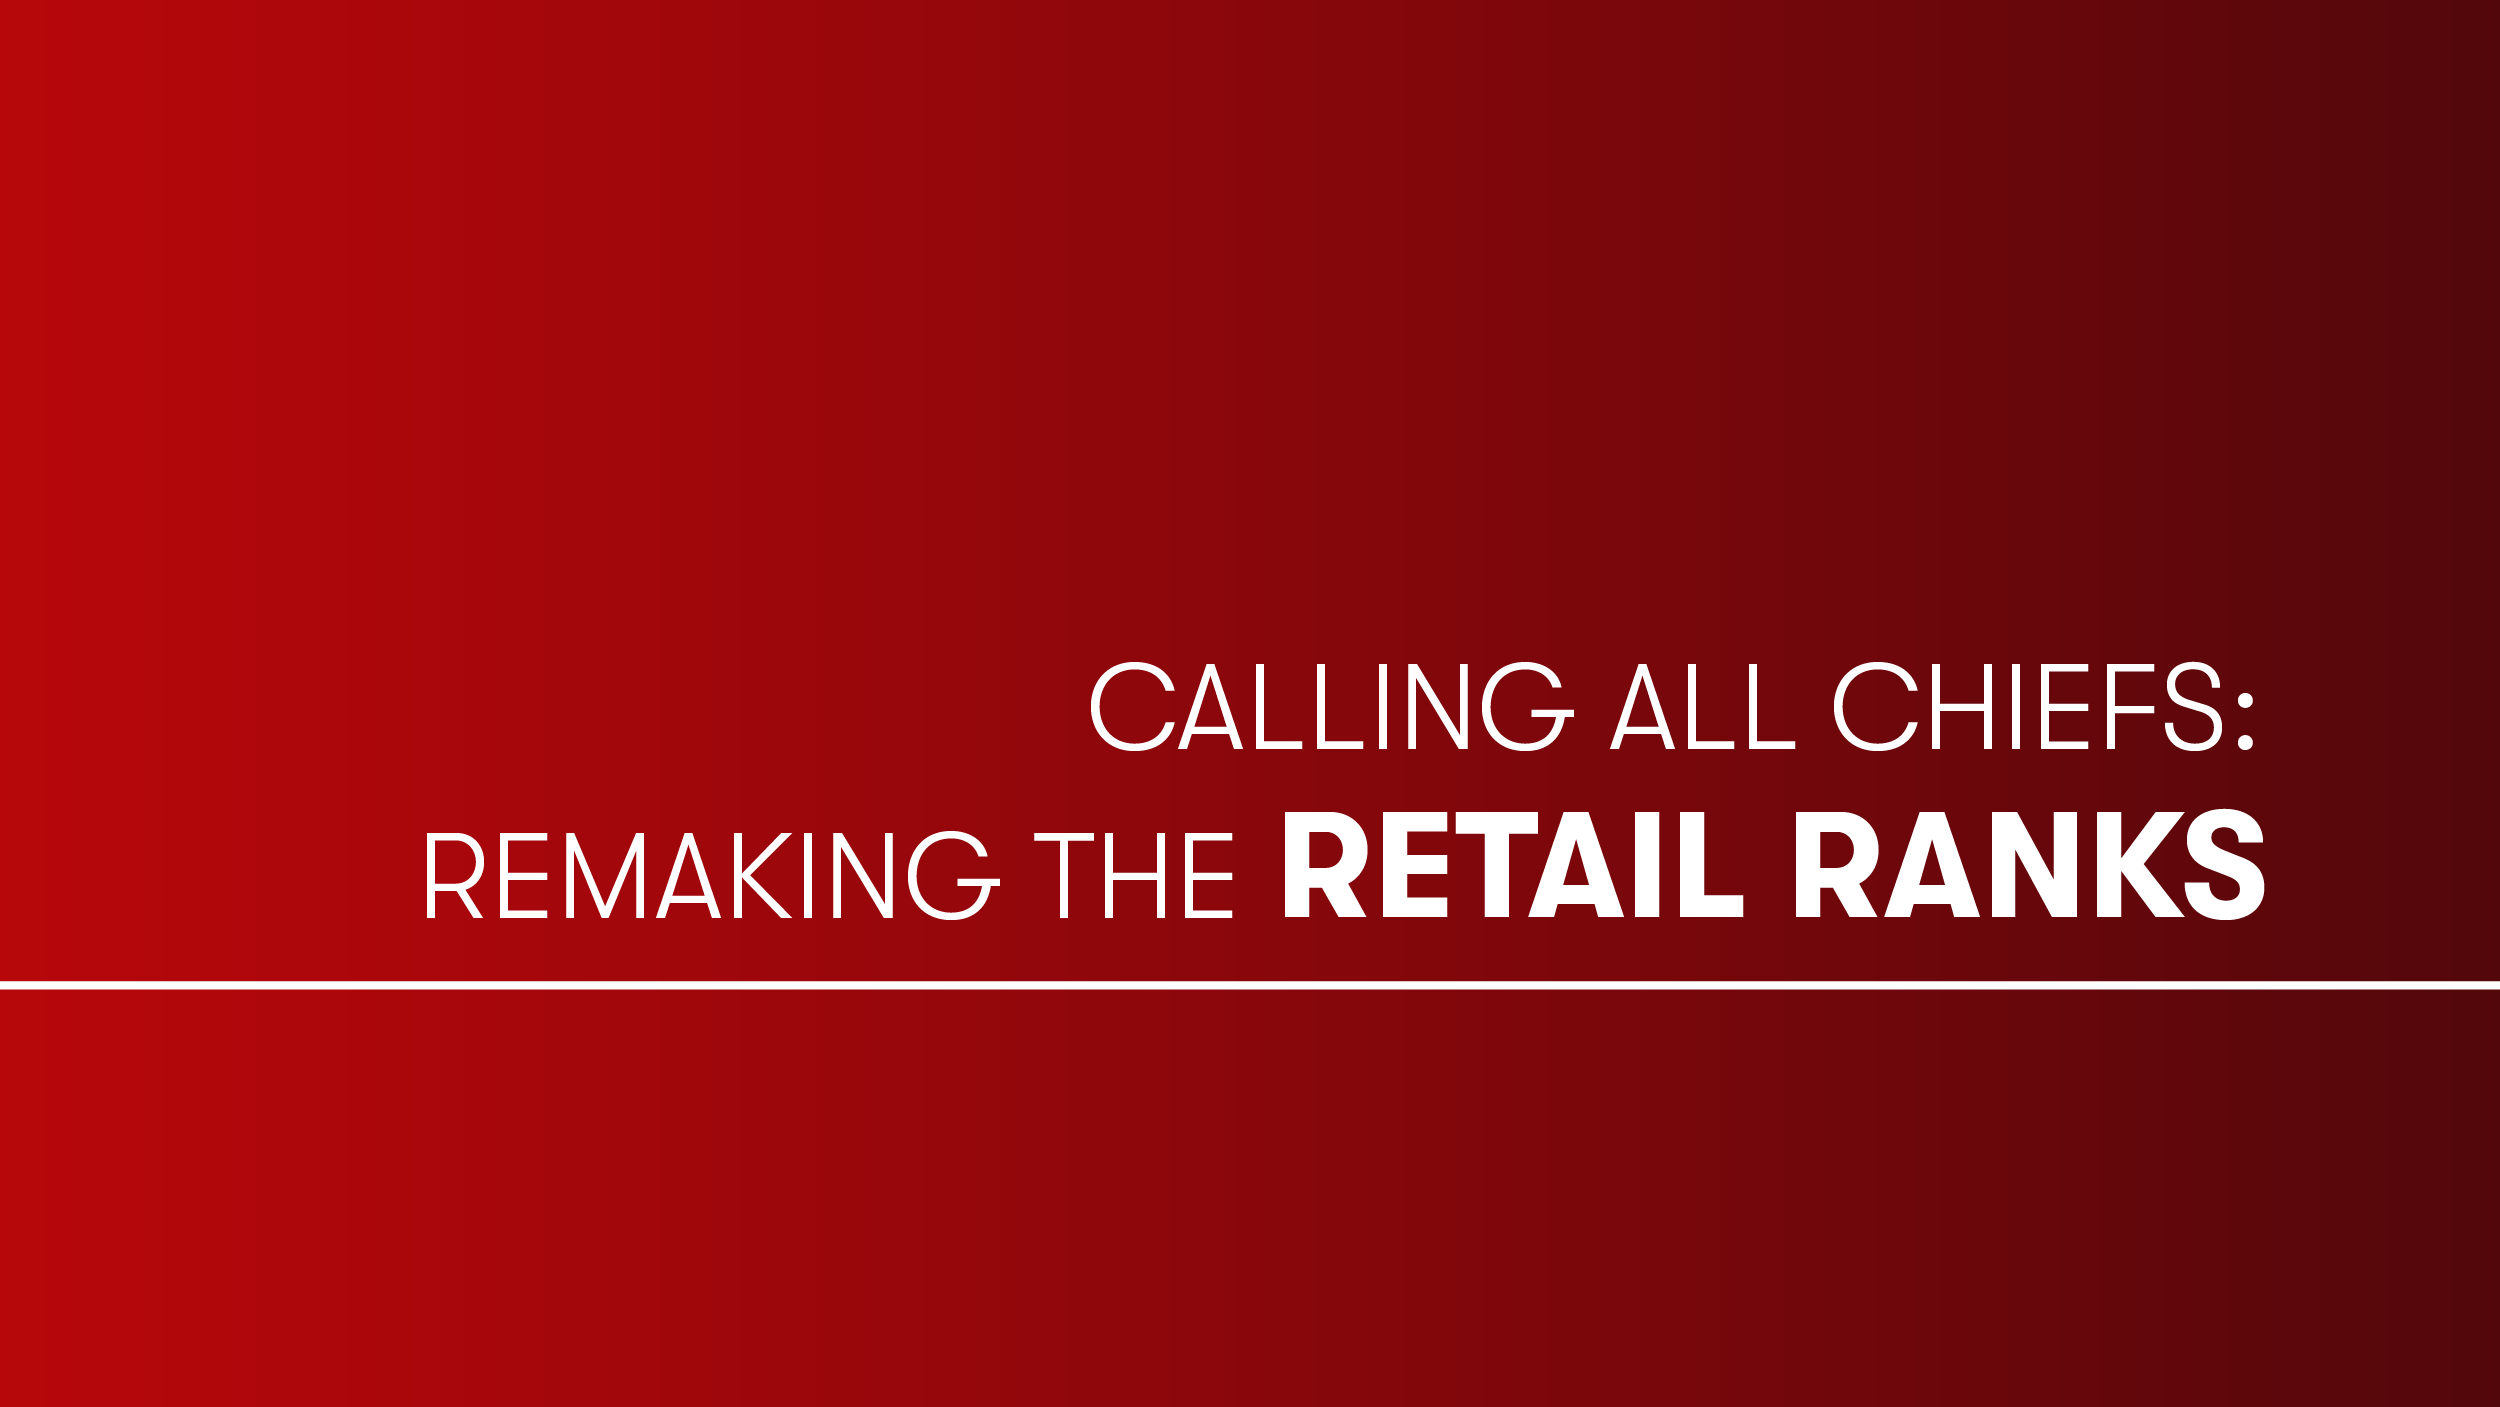 Calling All Chiefs: Remaking the Retail Ranks